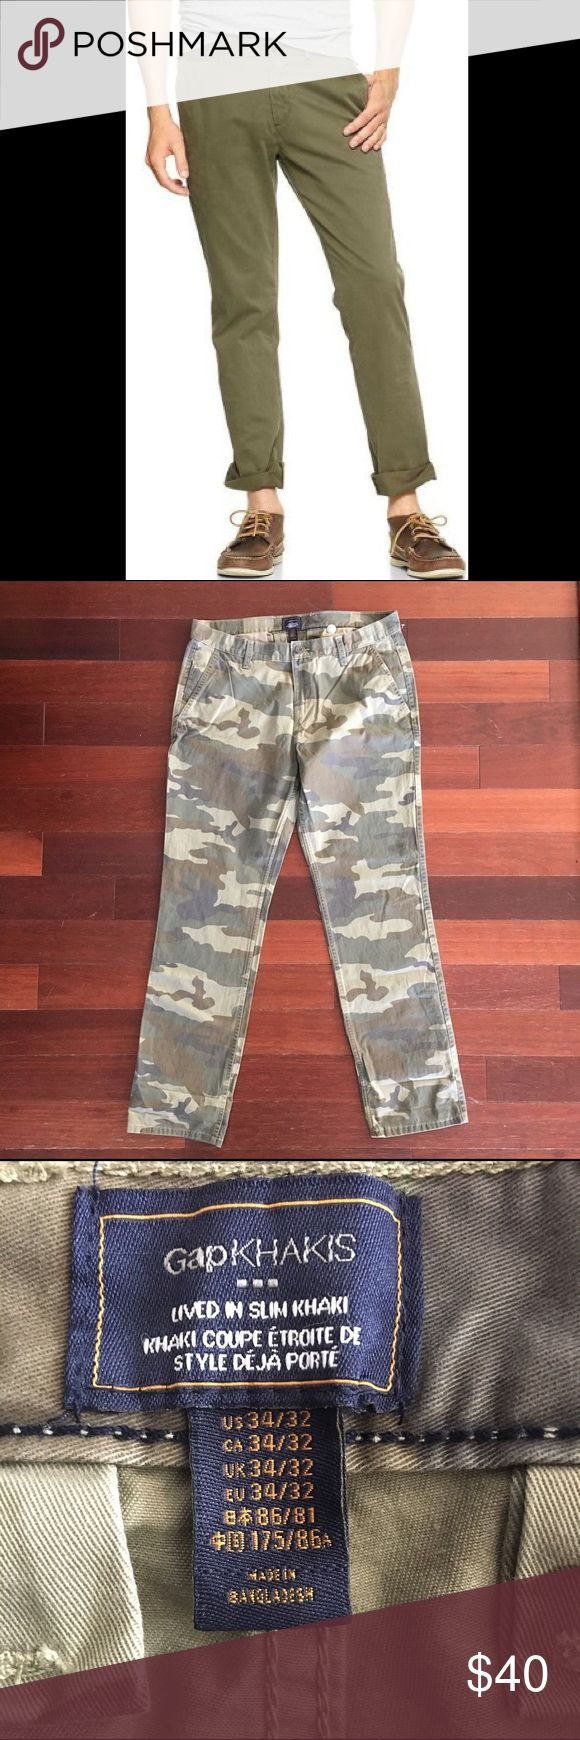 "NWT $60 GAP Lived In Slim Khaki Camouflage 34 NEW With Tags $60 GAP Men's Lived In Slim Fit Khakis in Camouflage. Size 34 with 32"" inseam. Slim through the leg. Sits at the lower waist. Slub twill weave. Zip fly, button closure. Front coin and slant pockets. Rear welt pockets. Please review photos in detail and ask questions prior to purchasing. GAP Pants Chinos & Khakis"